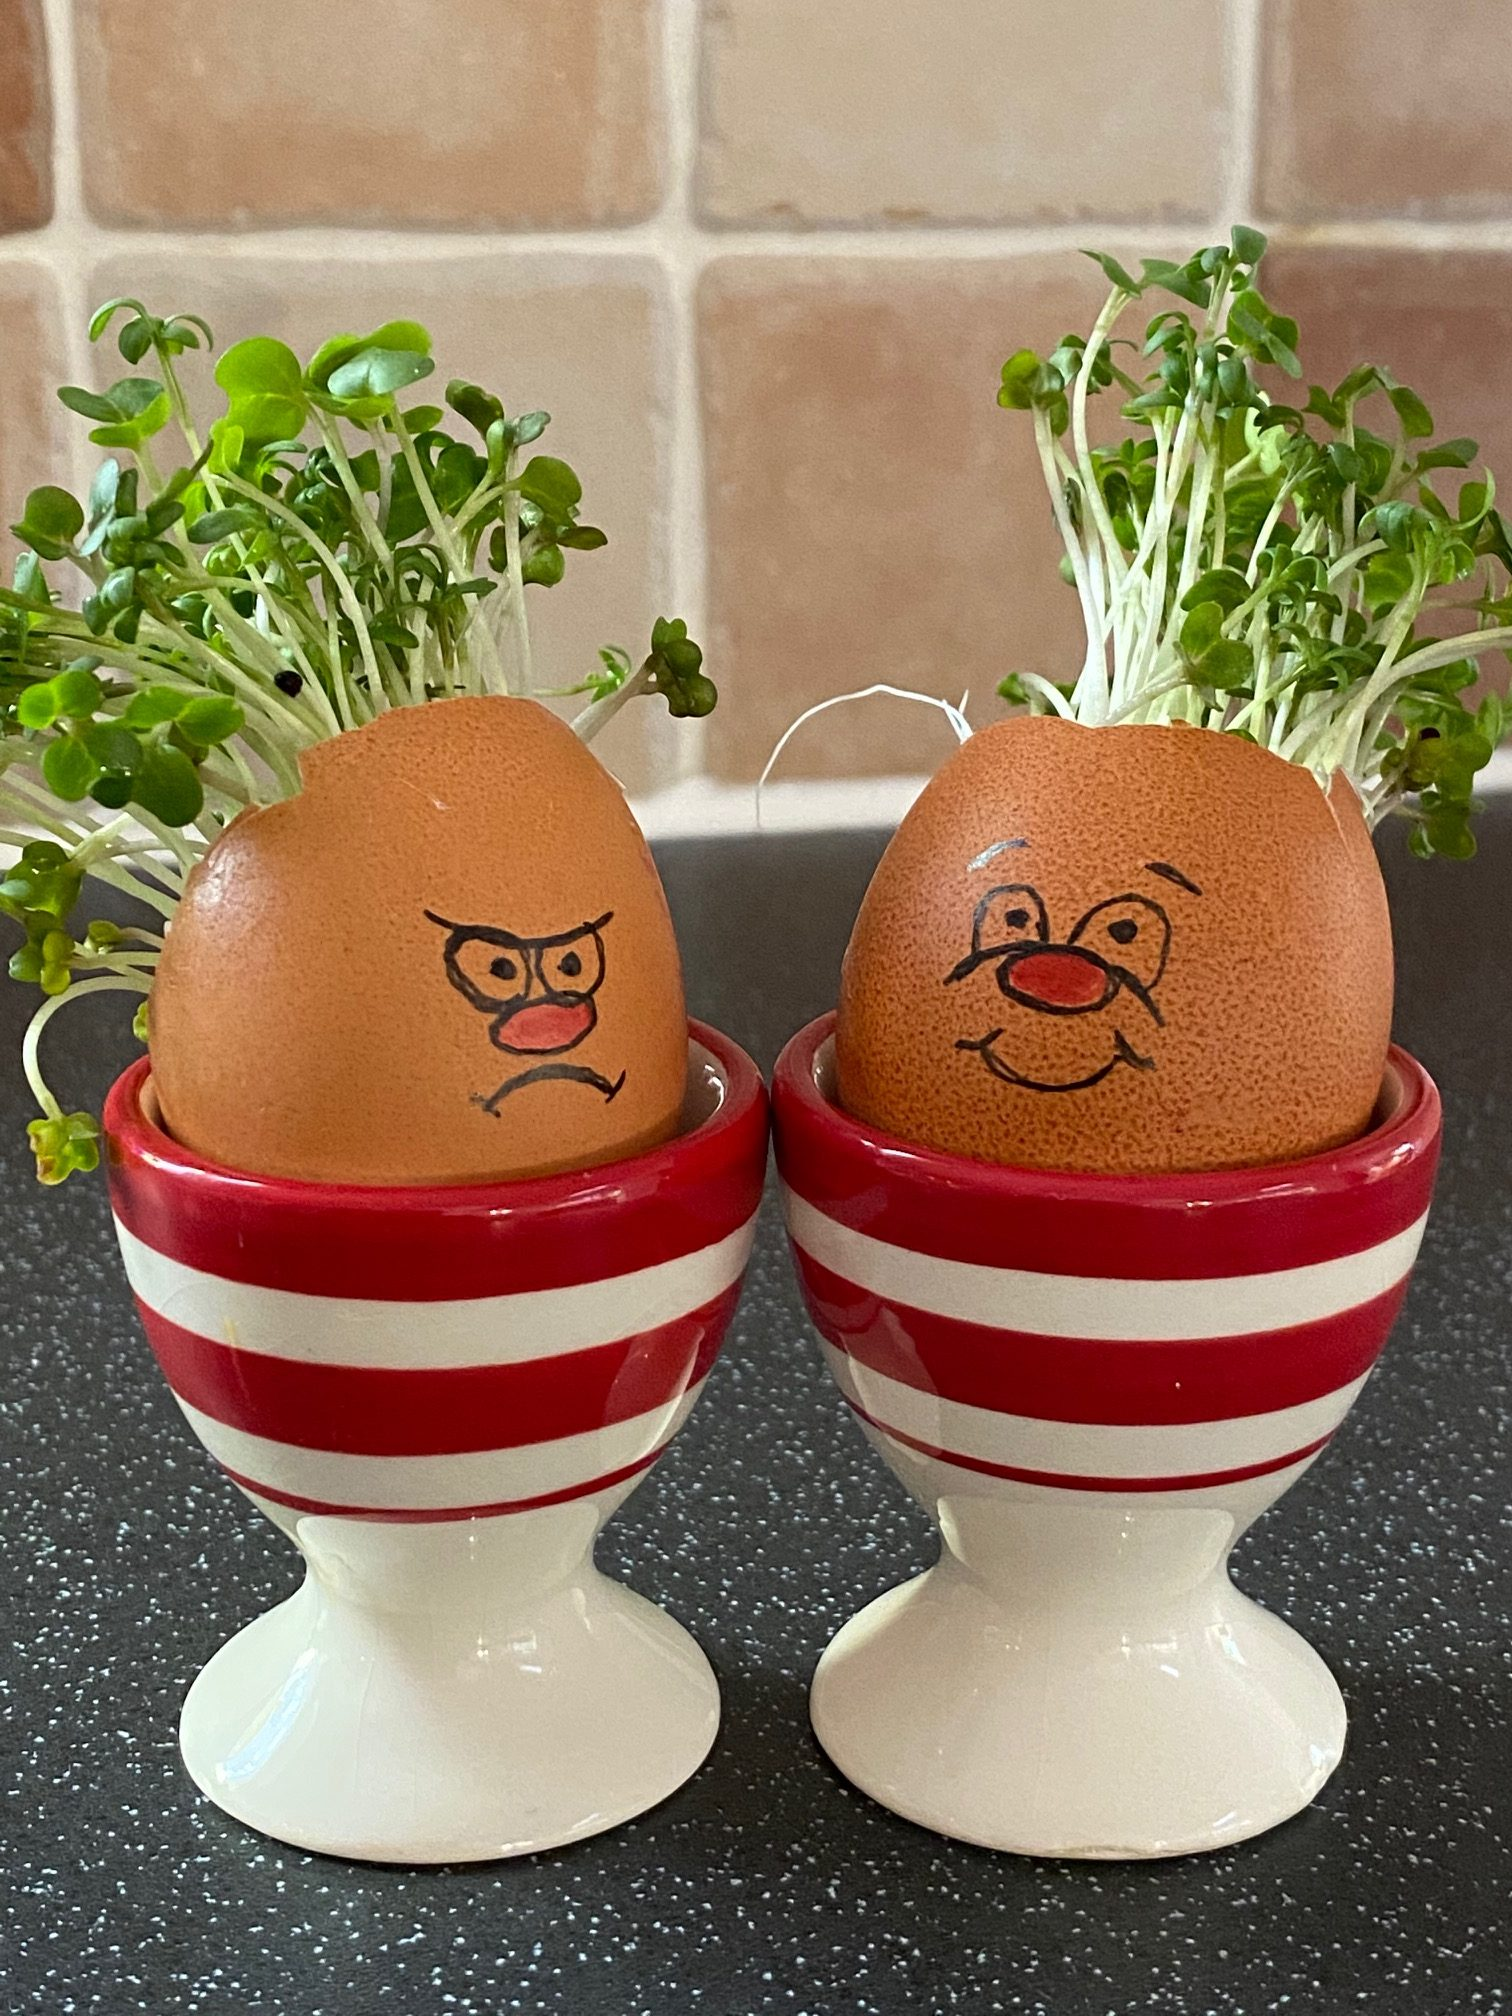 Cress heads with silly faces - an example of what you can make with Food for Thought